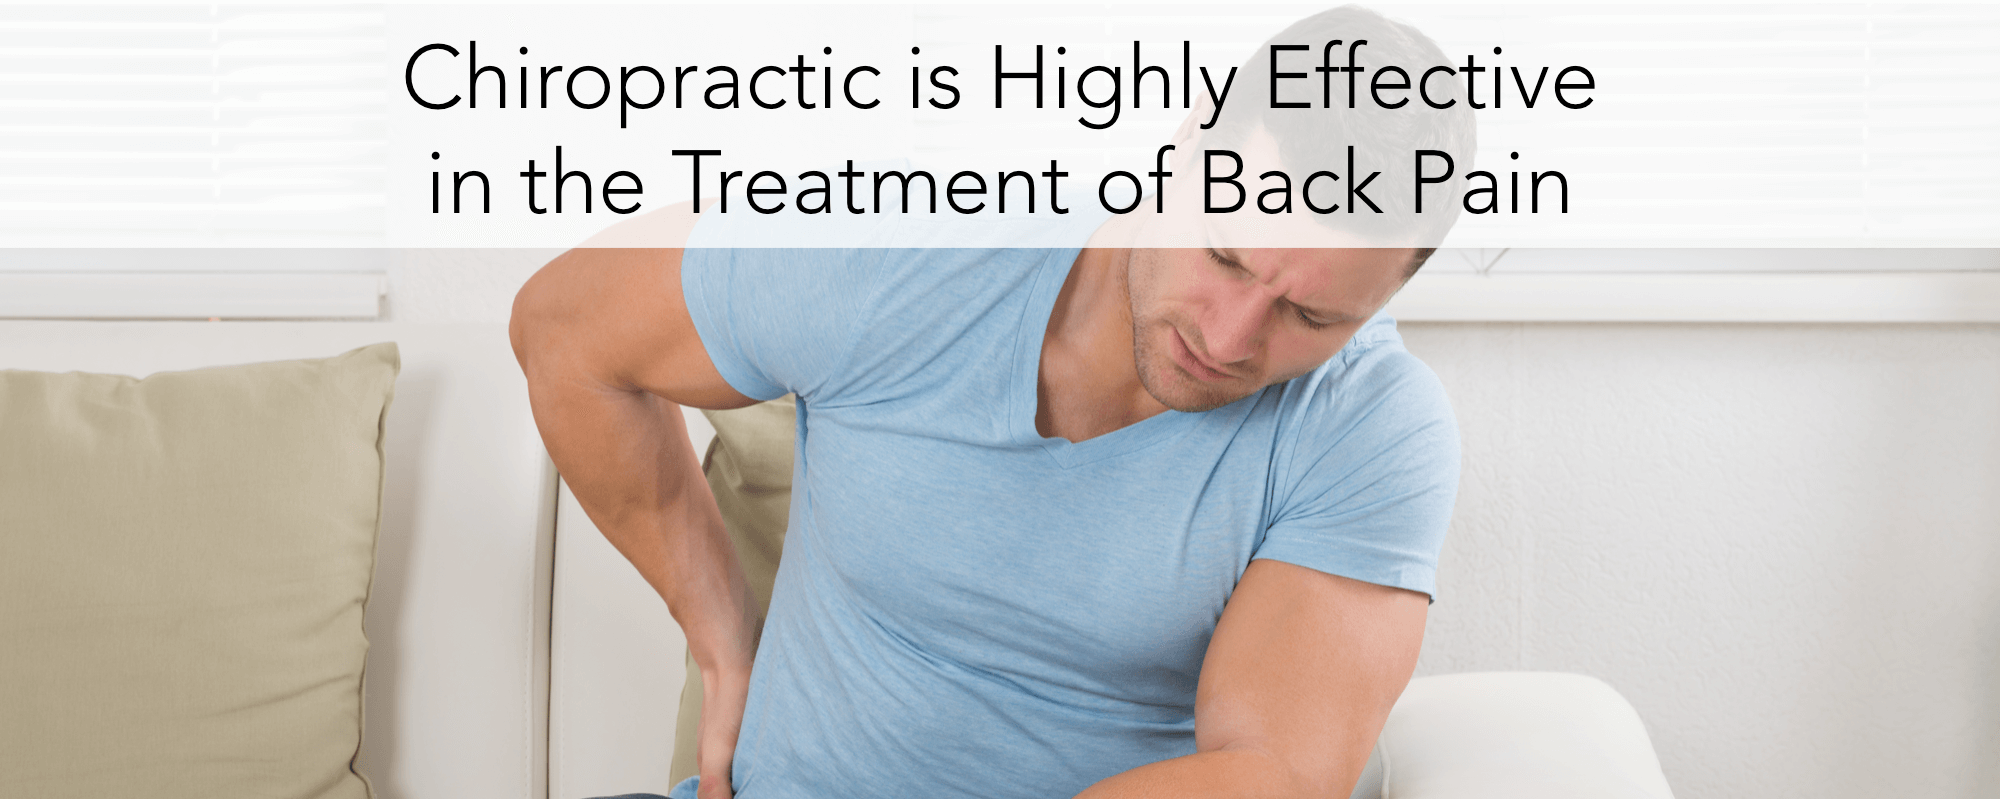 Chiropractic is Highly Effective in the Treatment of Back Pain